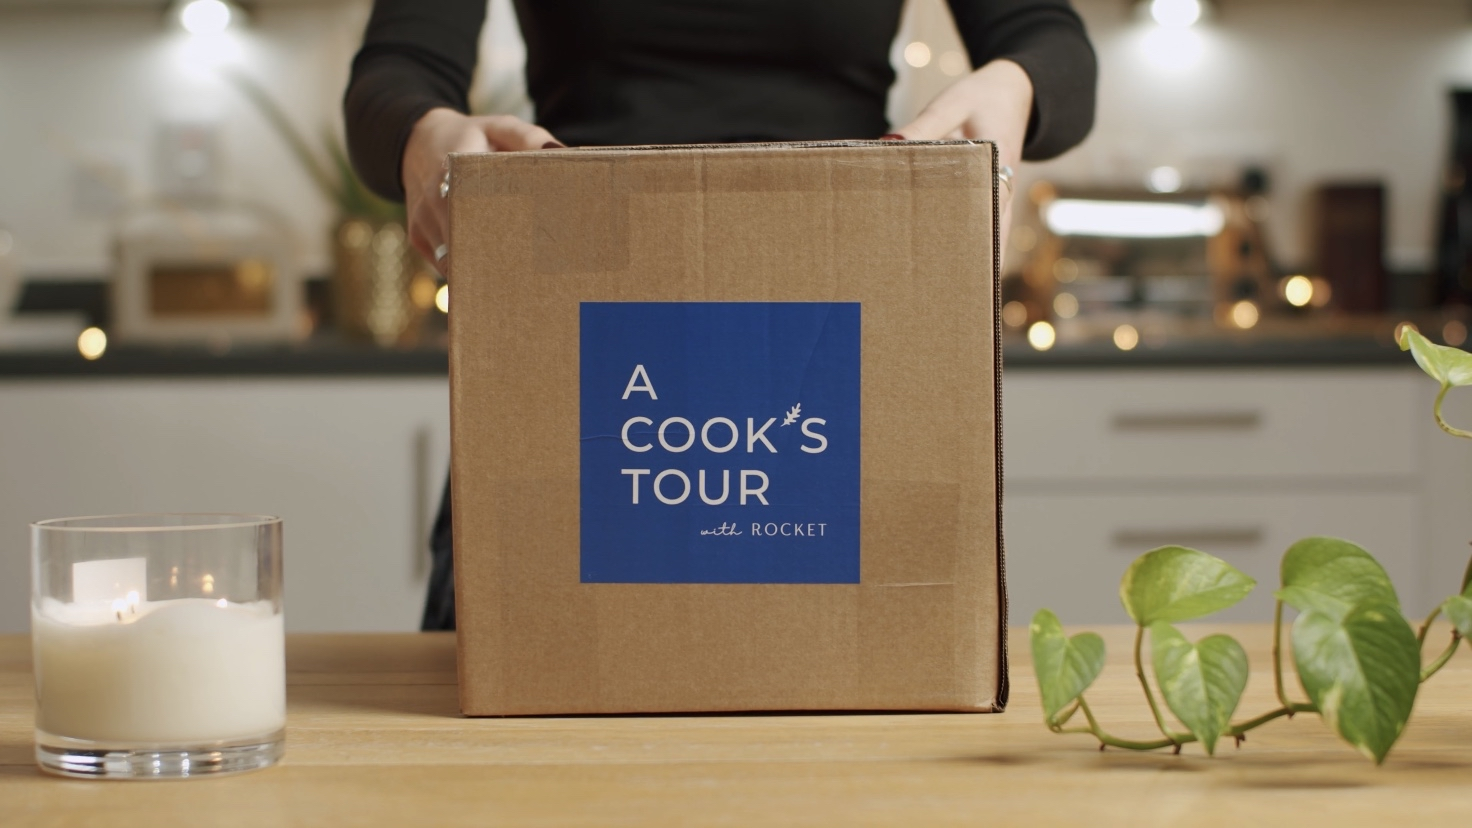 Delivery of ingredients from Rocket Food's home delivery business, A Cook's Tour.